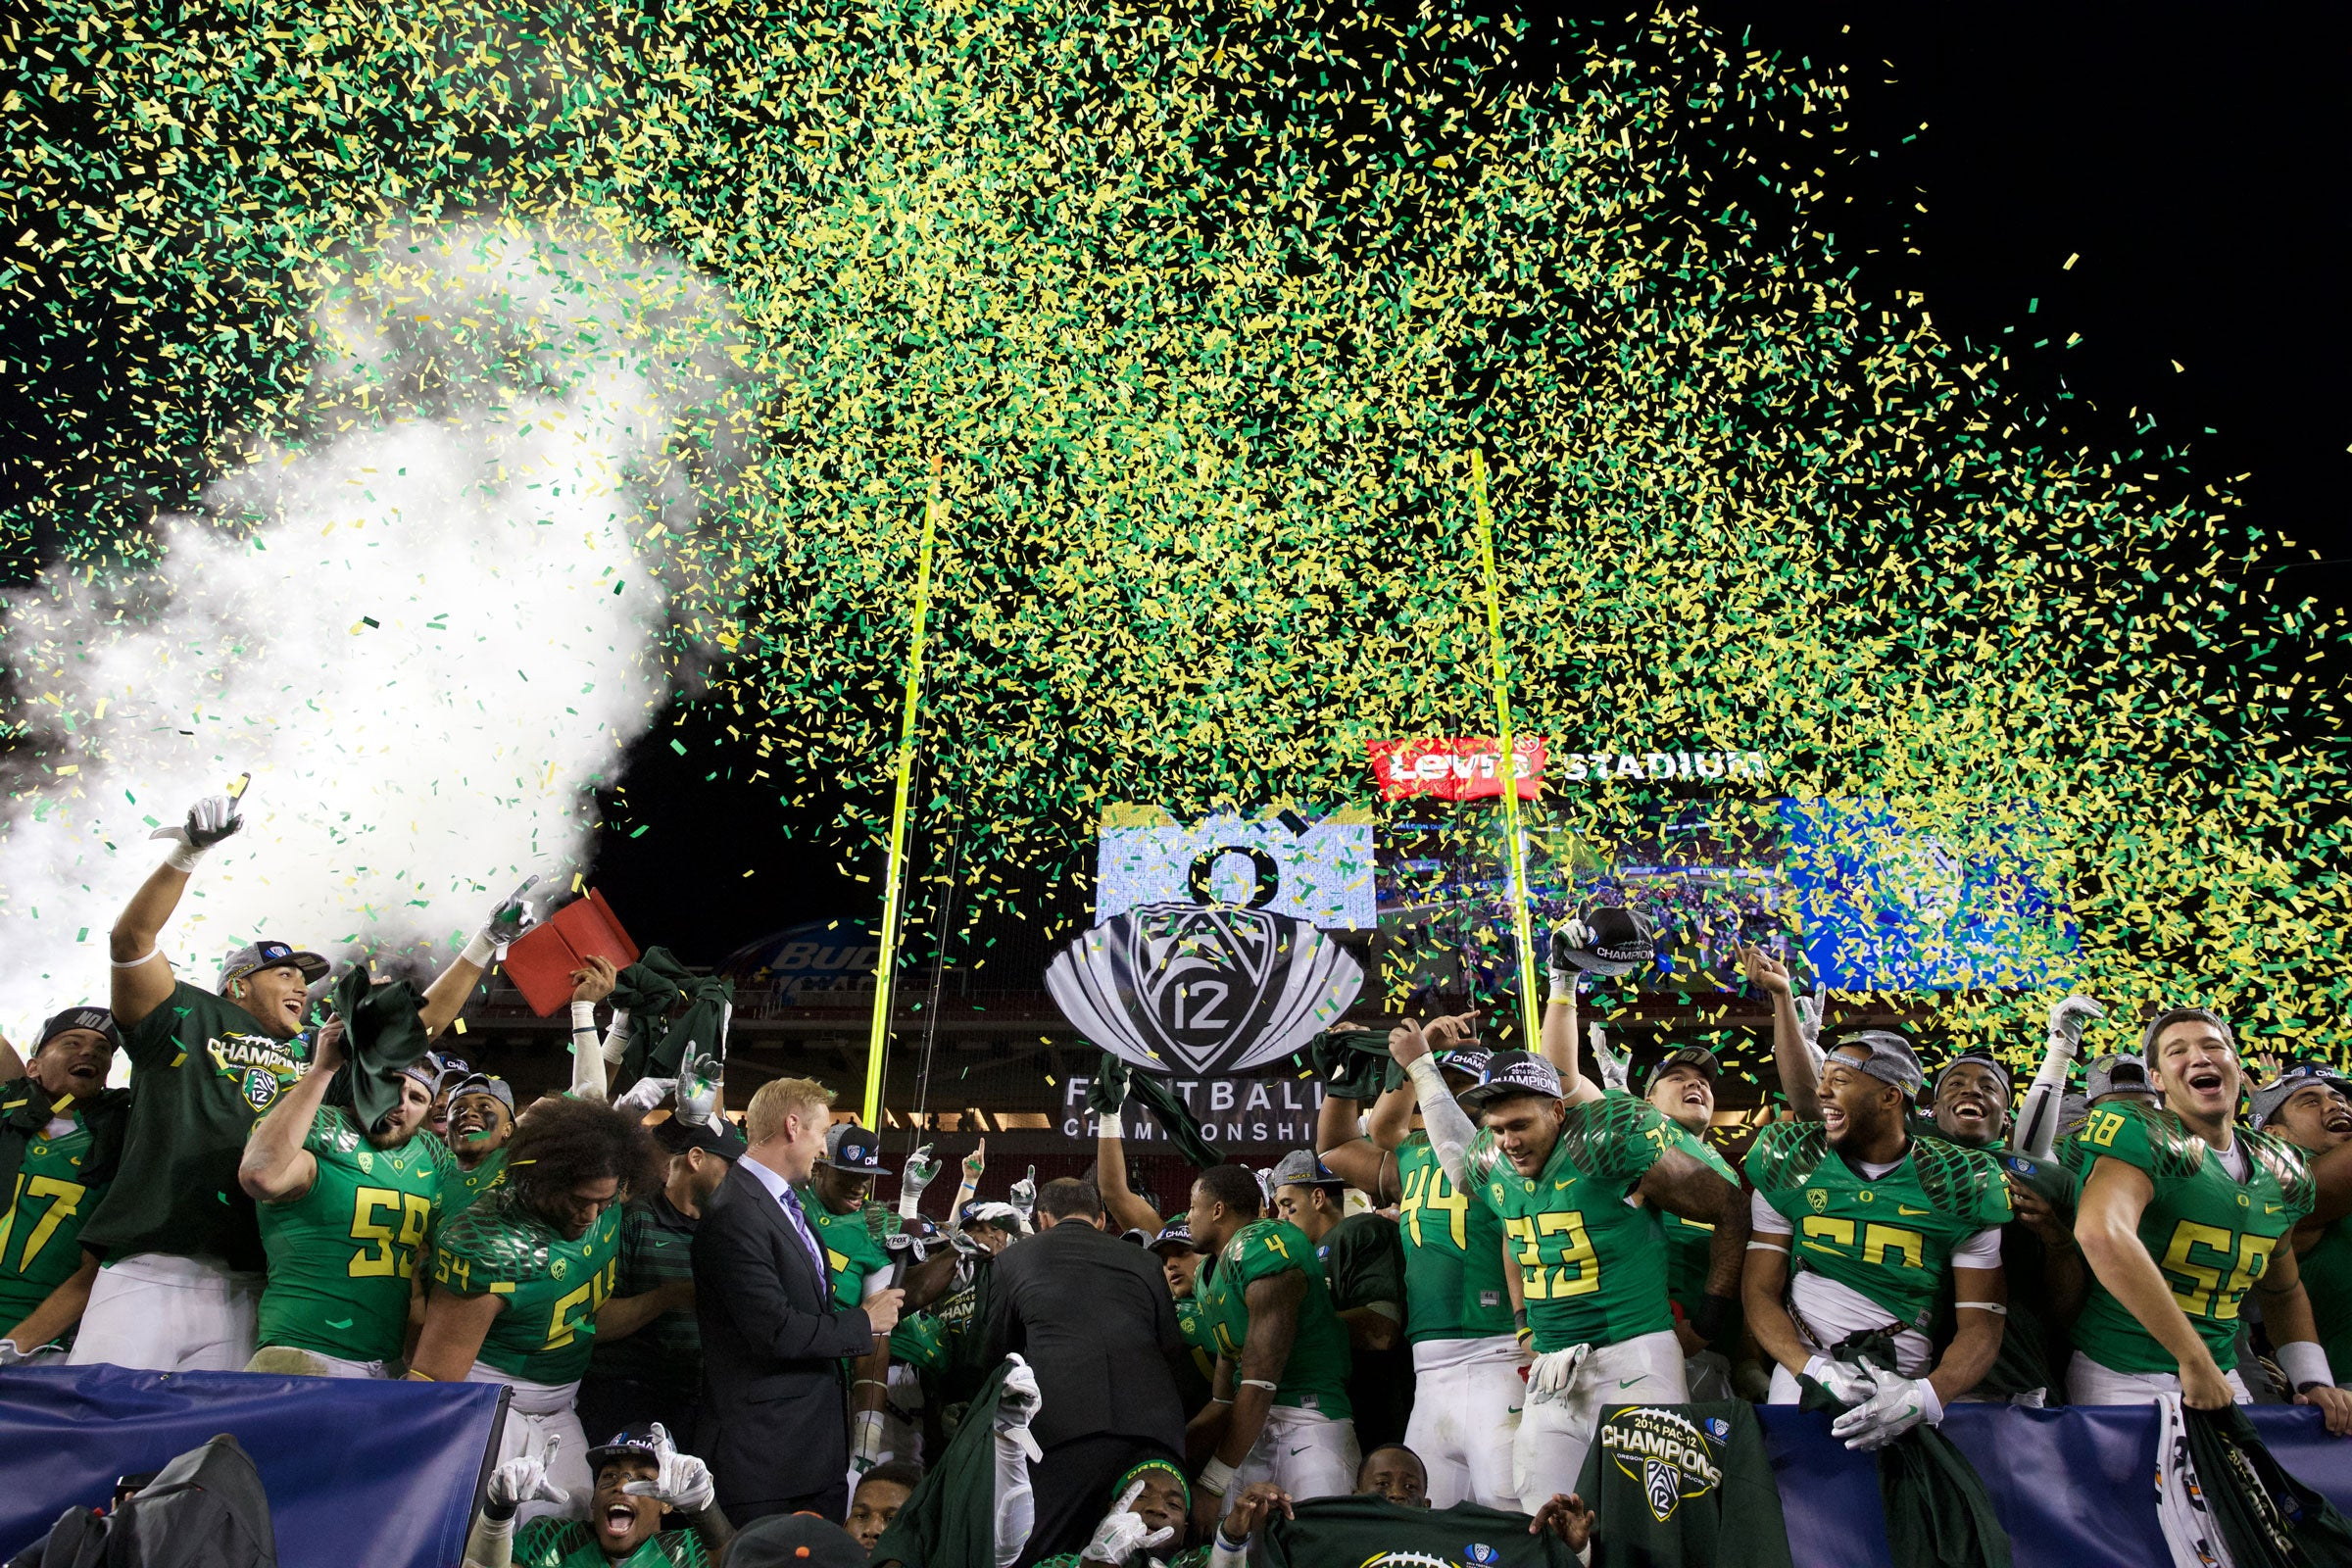 The Oregon Ducks celebrate their second Pac-12 Championship in as many appearances, their first being a win over UCLA in 2011. Photo by Thomas Boyd The Oregonian/OregonLive.